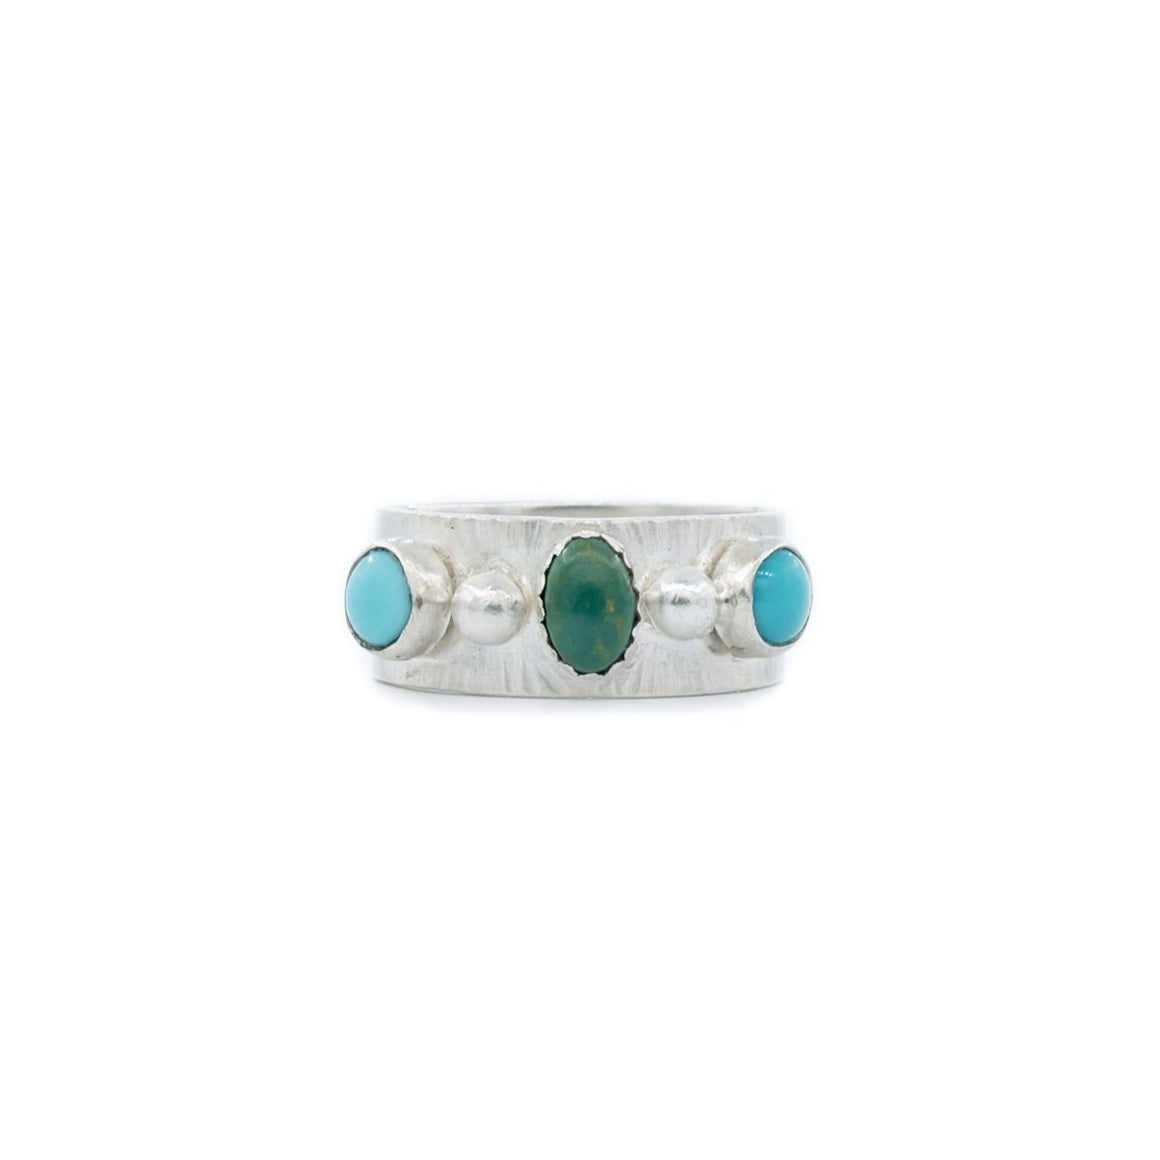 Green and Blue Turquoise and Silver Ladies Wedding Band Style Ring by OSJ